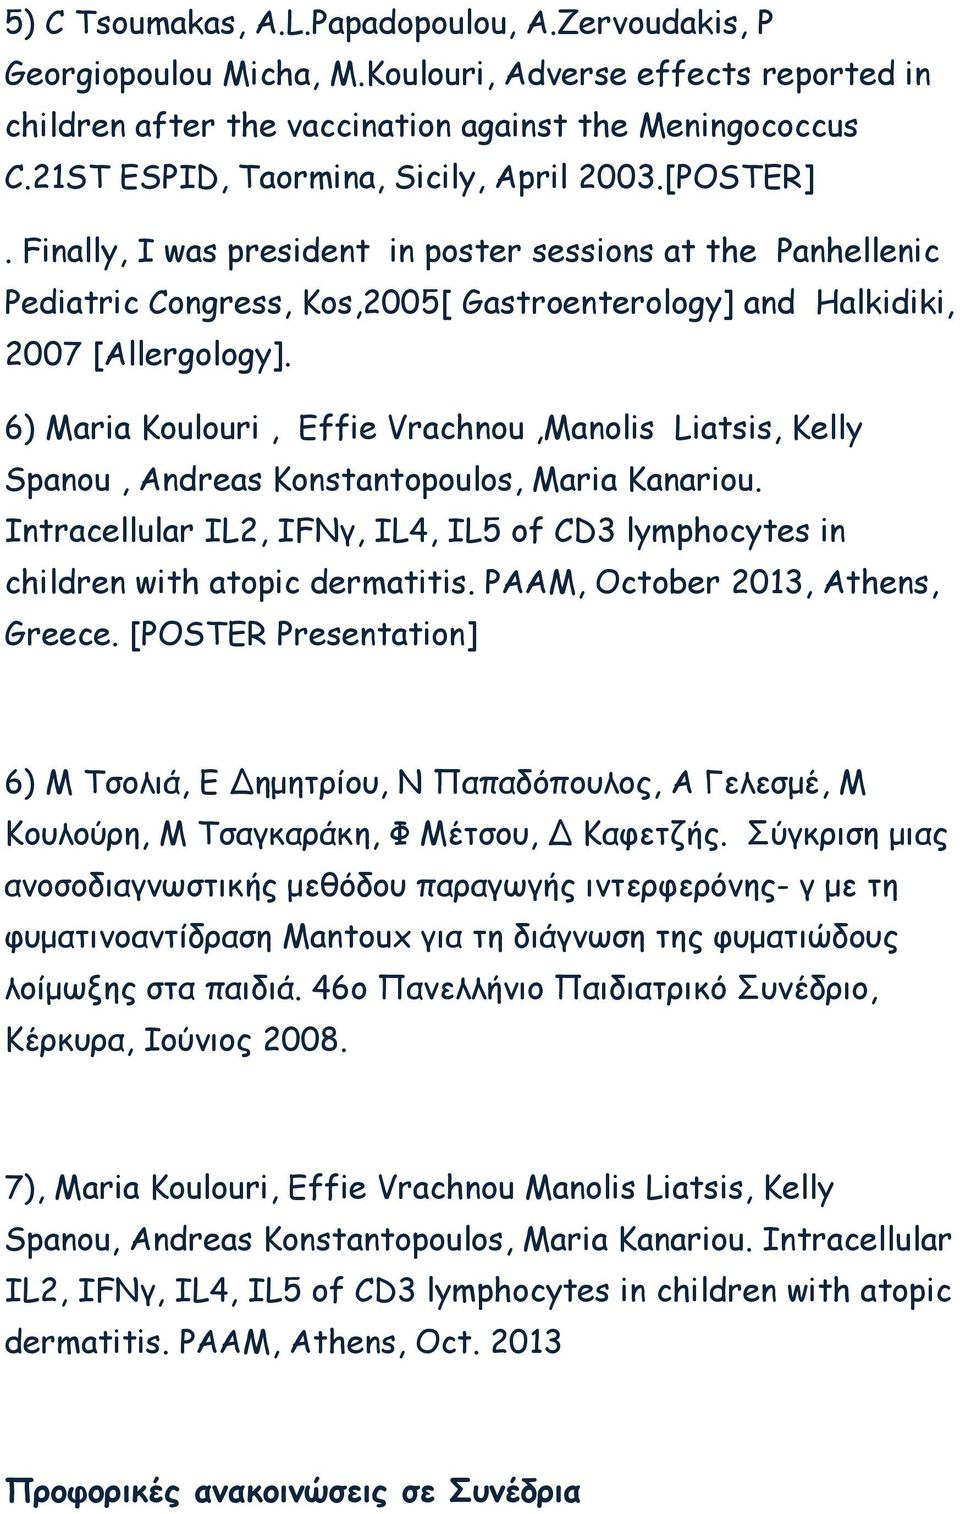 6) Maria Koulouri, Effie Vrachnou,Manolis Liatsis, Kelly Spanou, Andreas Konstantopoulos, Maria Kanariou. Intracellular IL2, IFNγ, IL4, IL5 of CD3 lymphocytes in children with atopic dermatitis.